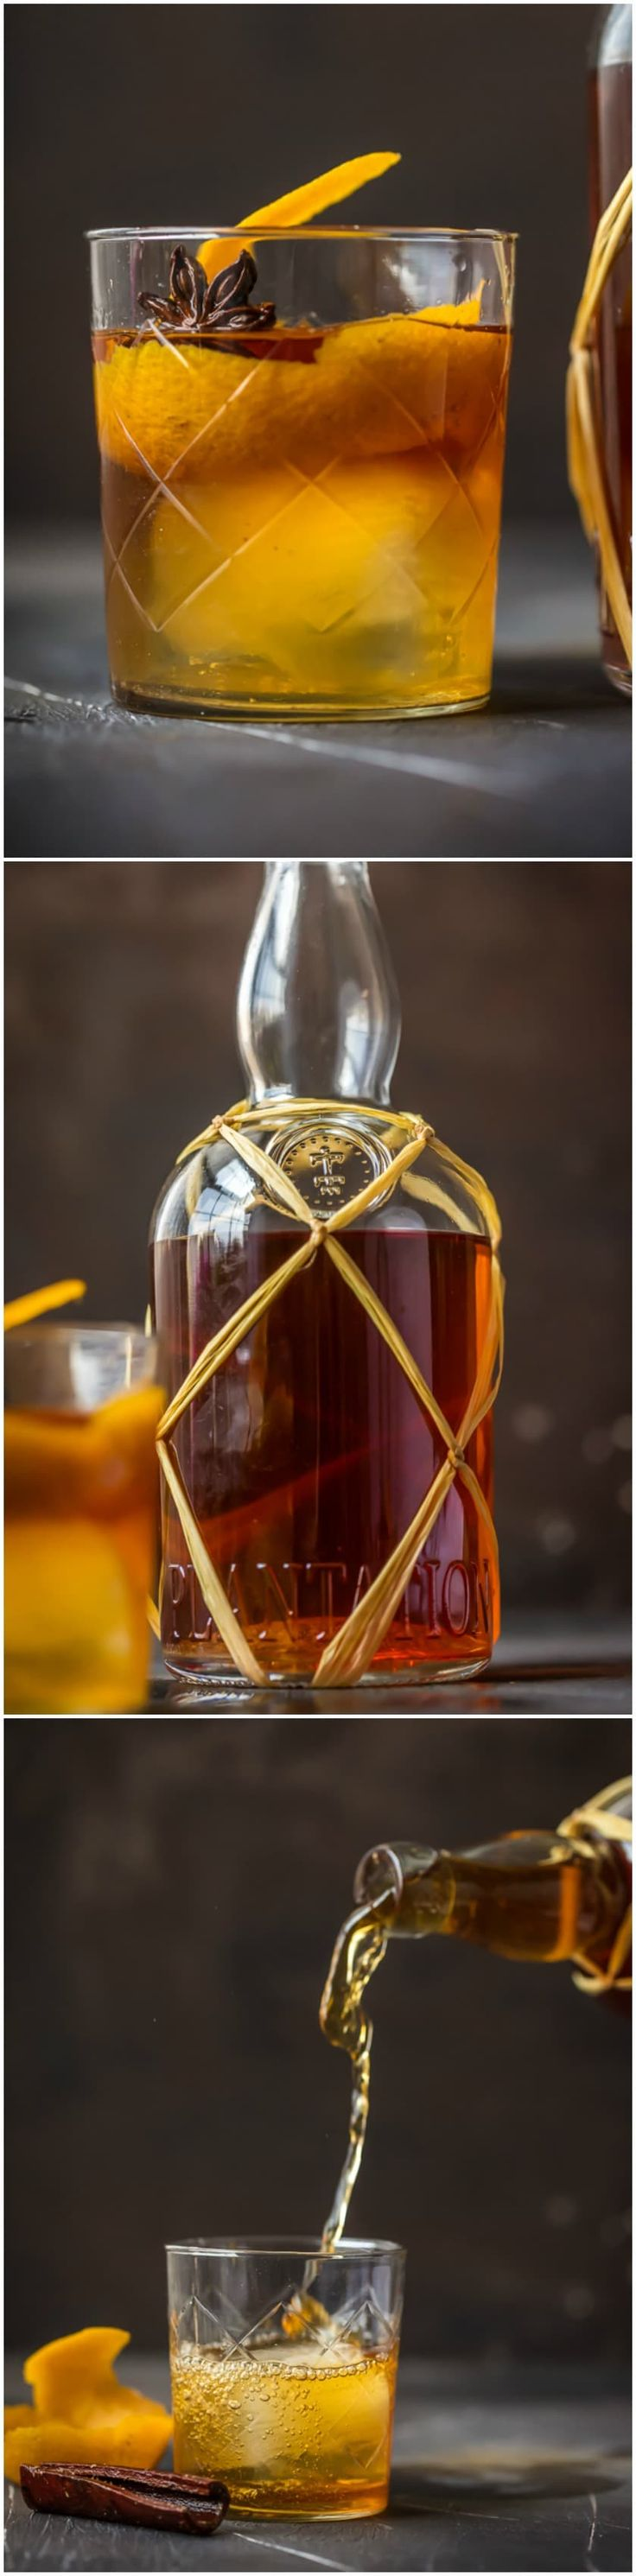 HOMEMADE SPICED RUM is so much easier than you think, and will blow you away with all the flavor! So much tastier than buying in store. This Homemade Spiced Rum makes an awesome DIY Christmas gift! via @beckygallhardin